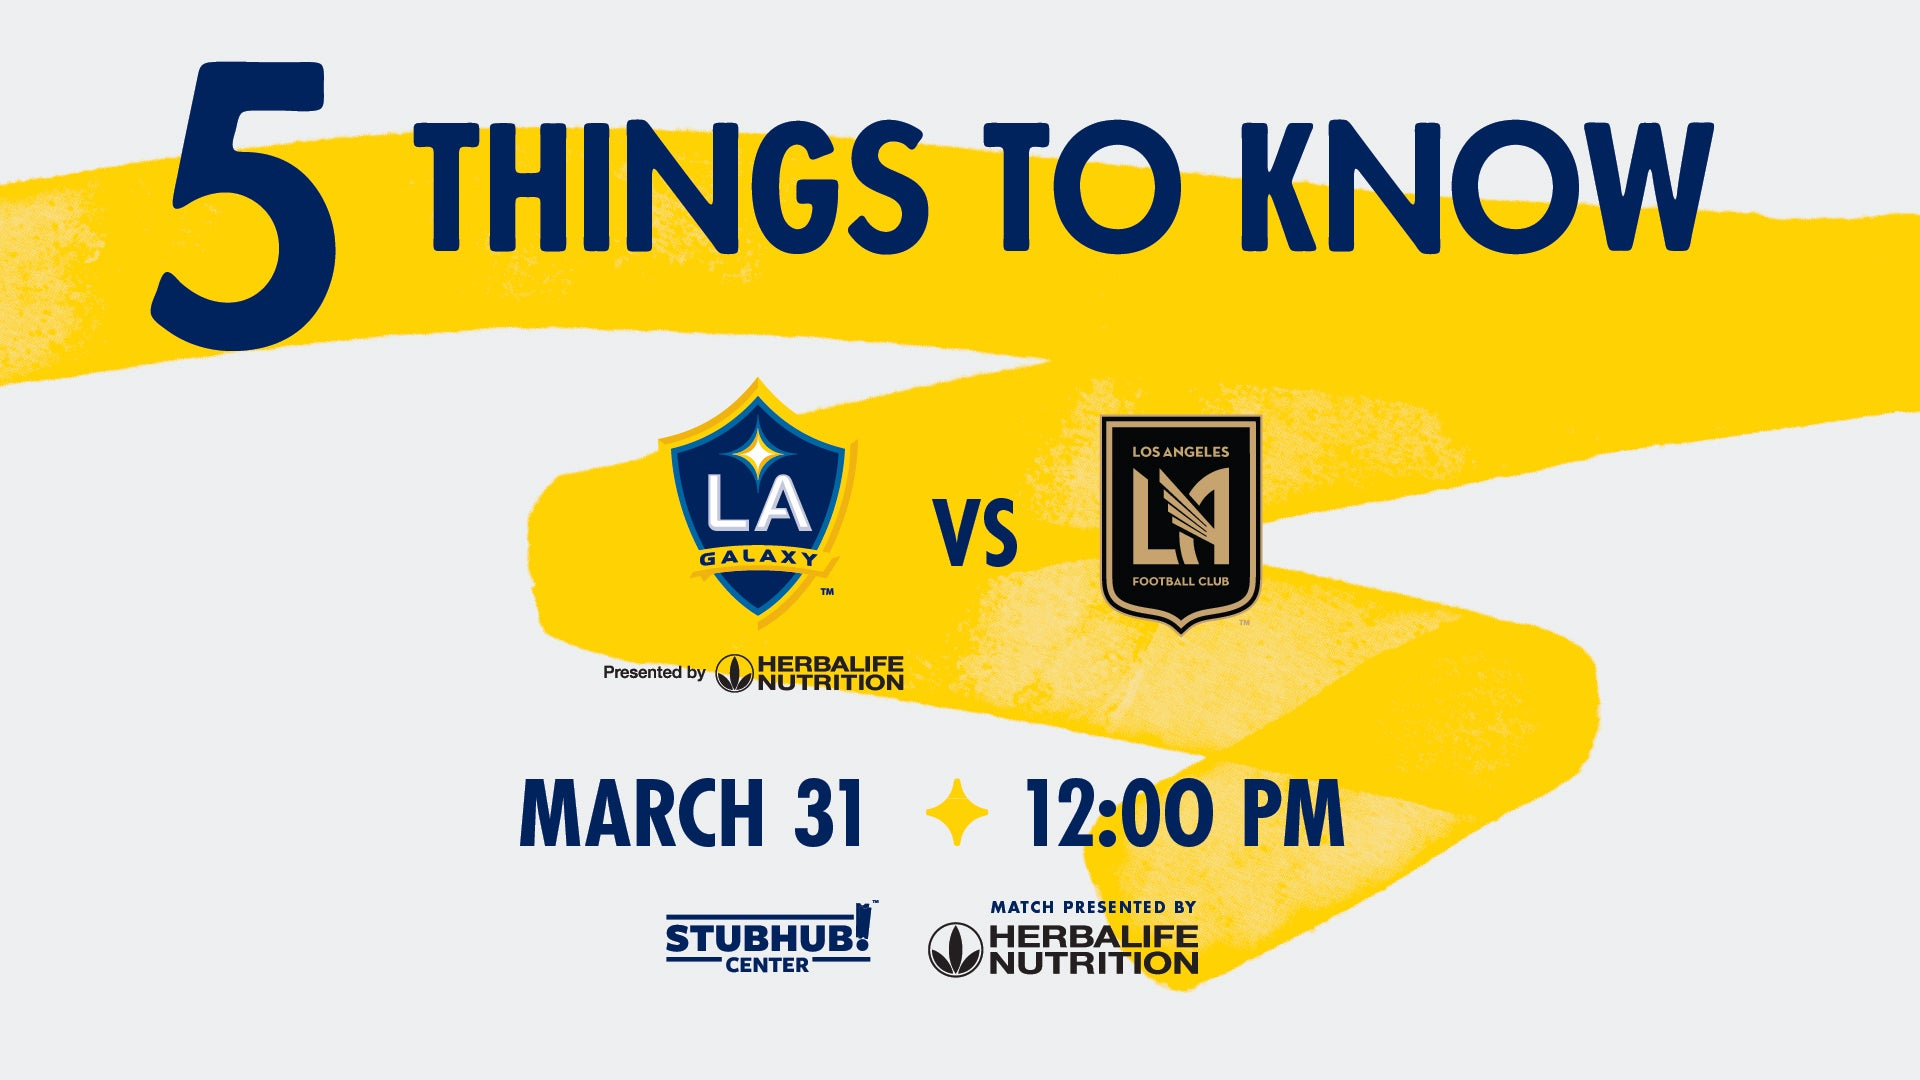 Five Things to Know for LA Galaxy vs  LAFC at StubHub Center